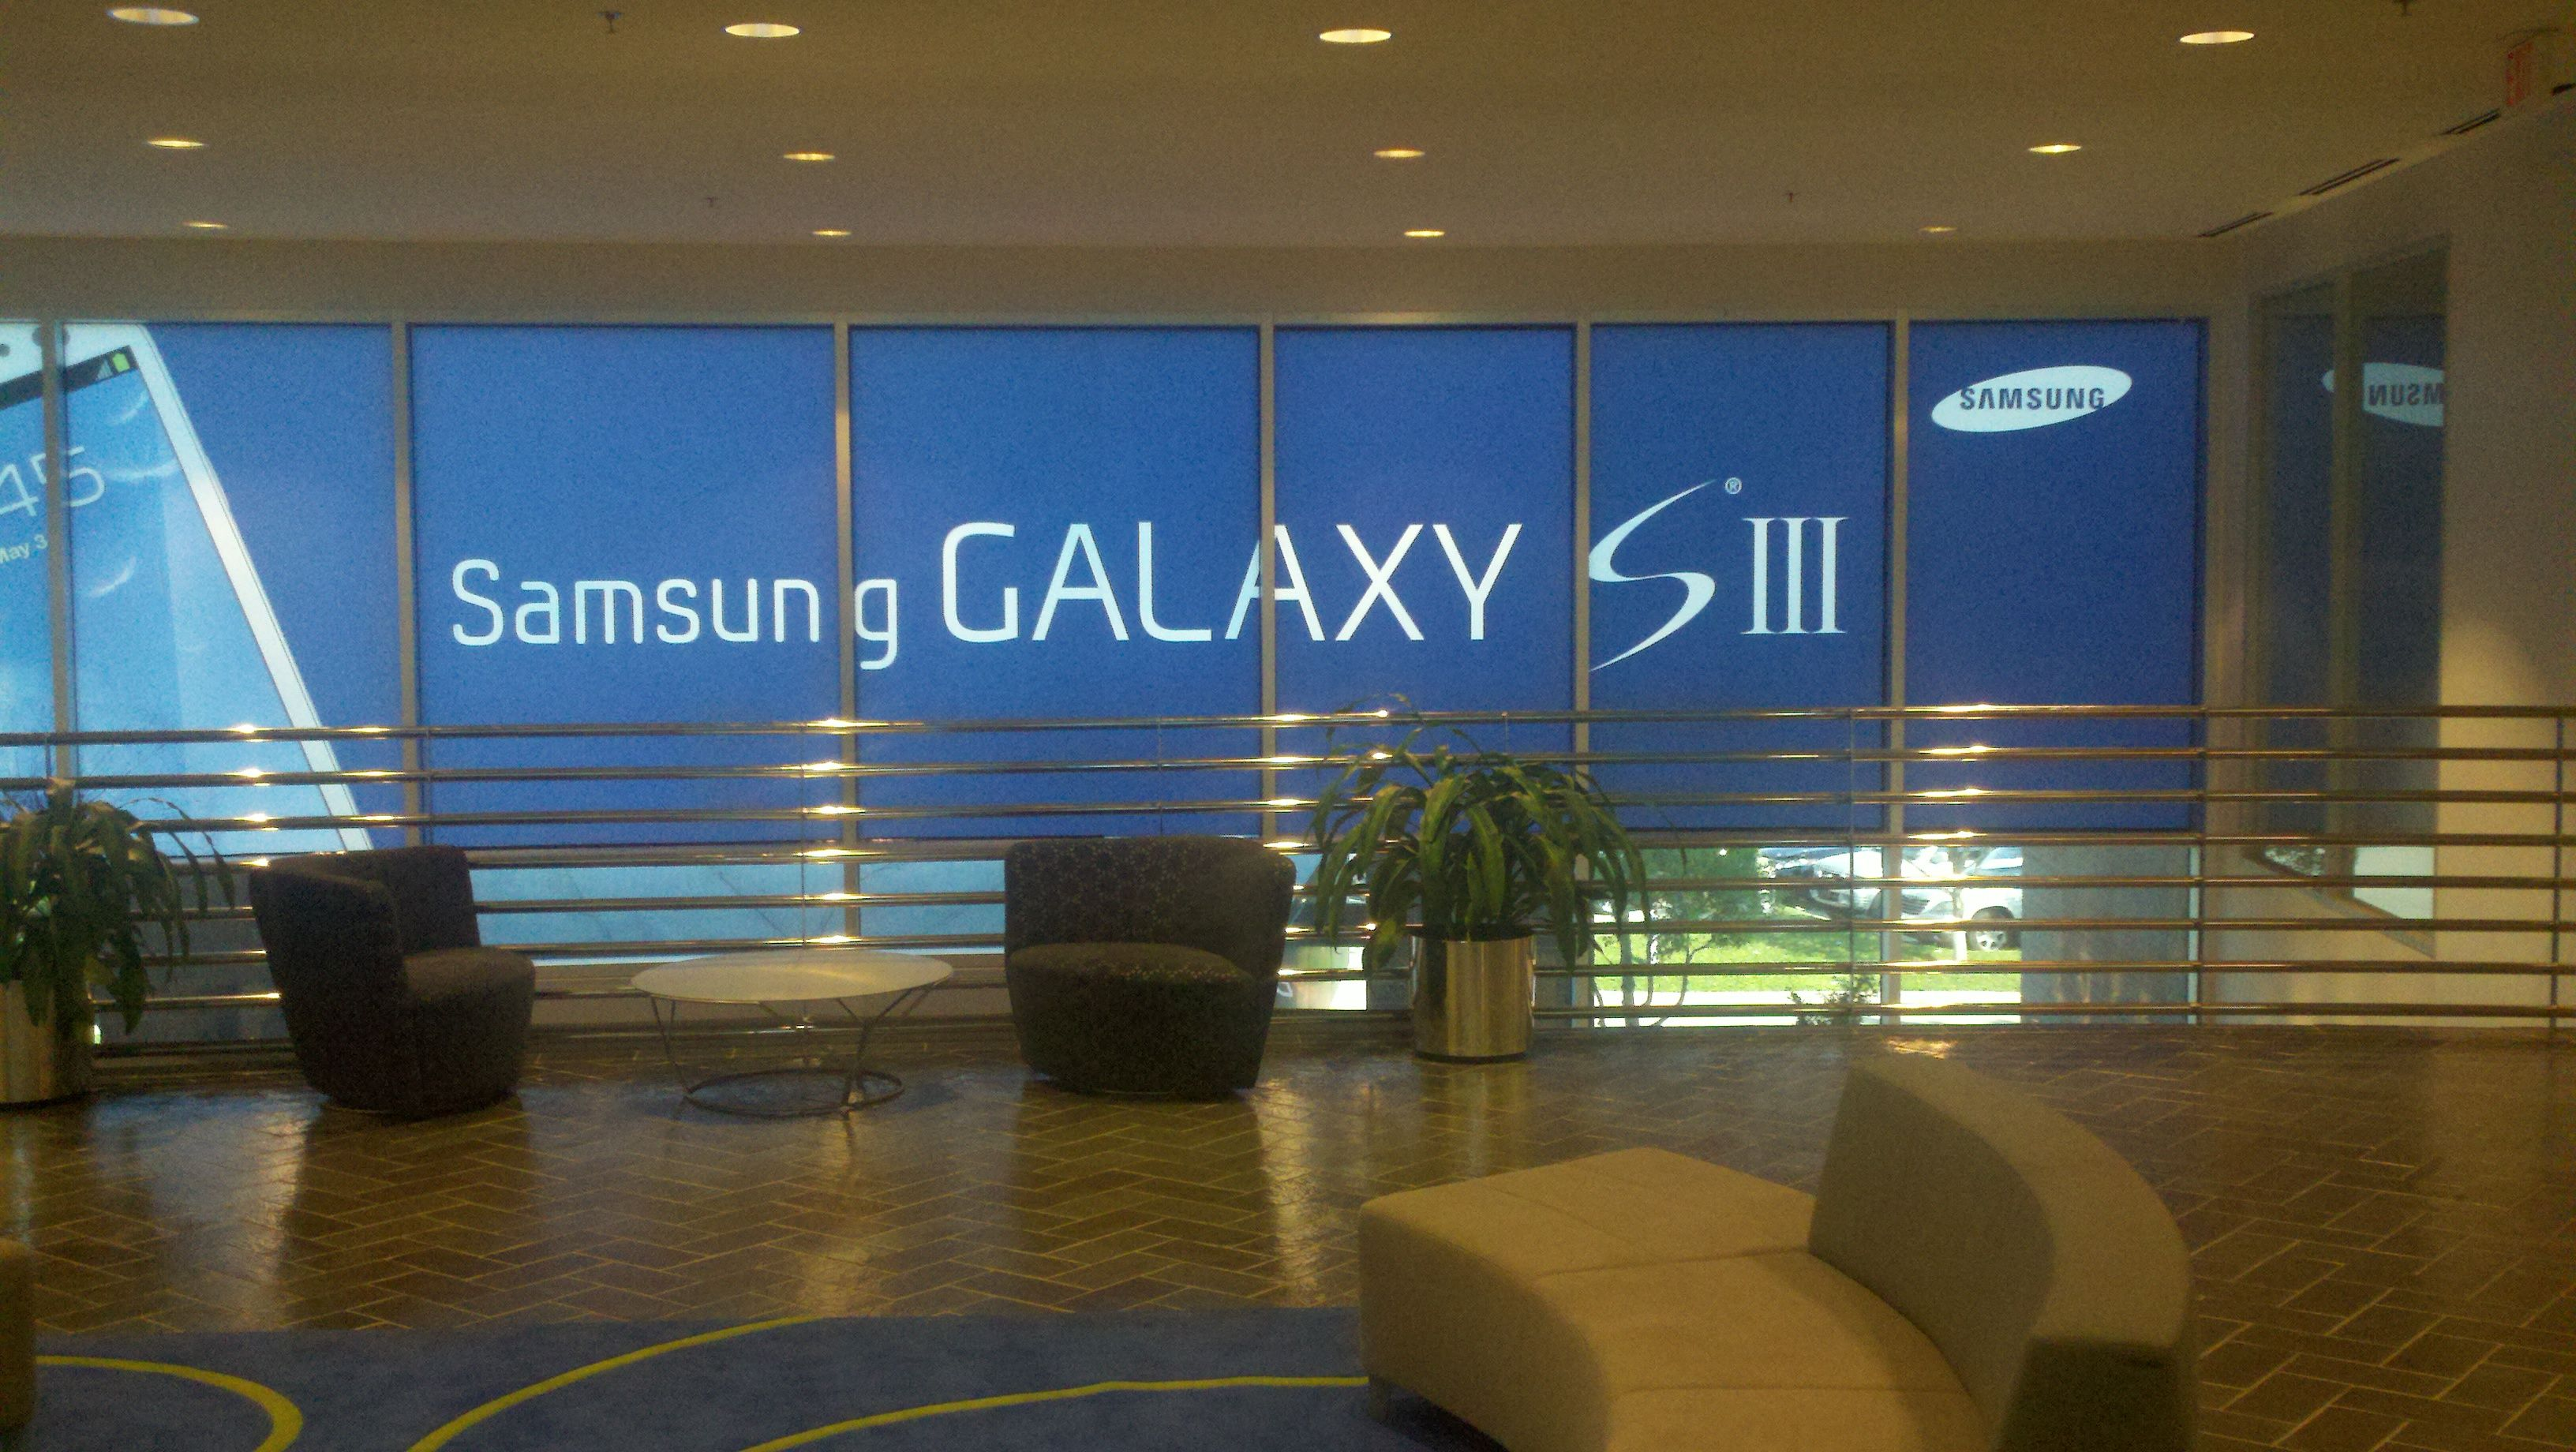 10' x 40' Window wrap at Samsung Mobile Corporate HQ in Texas